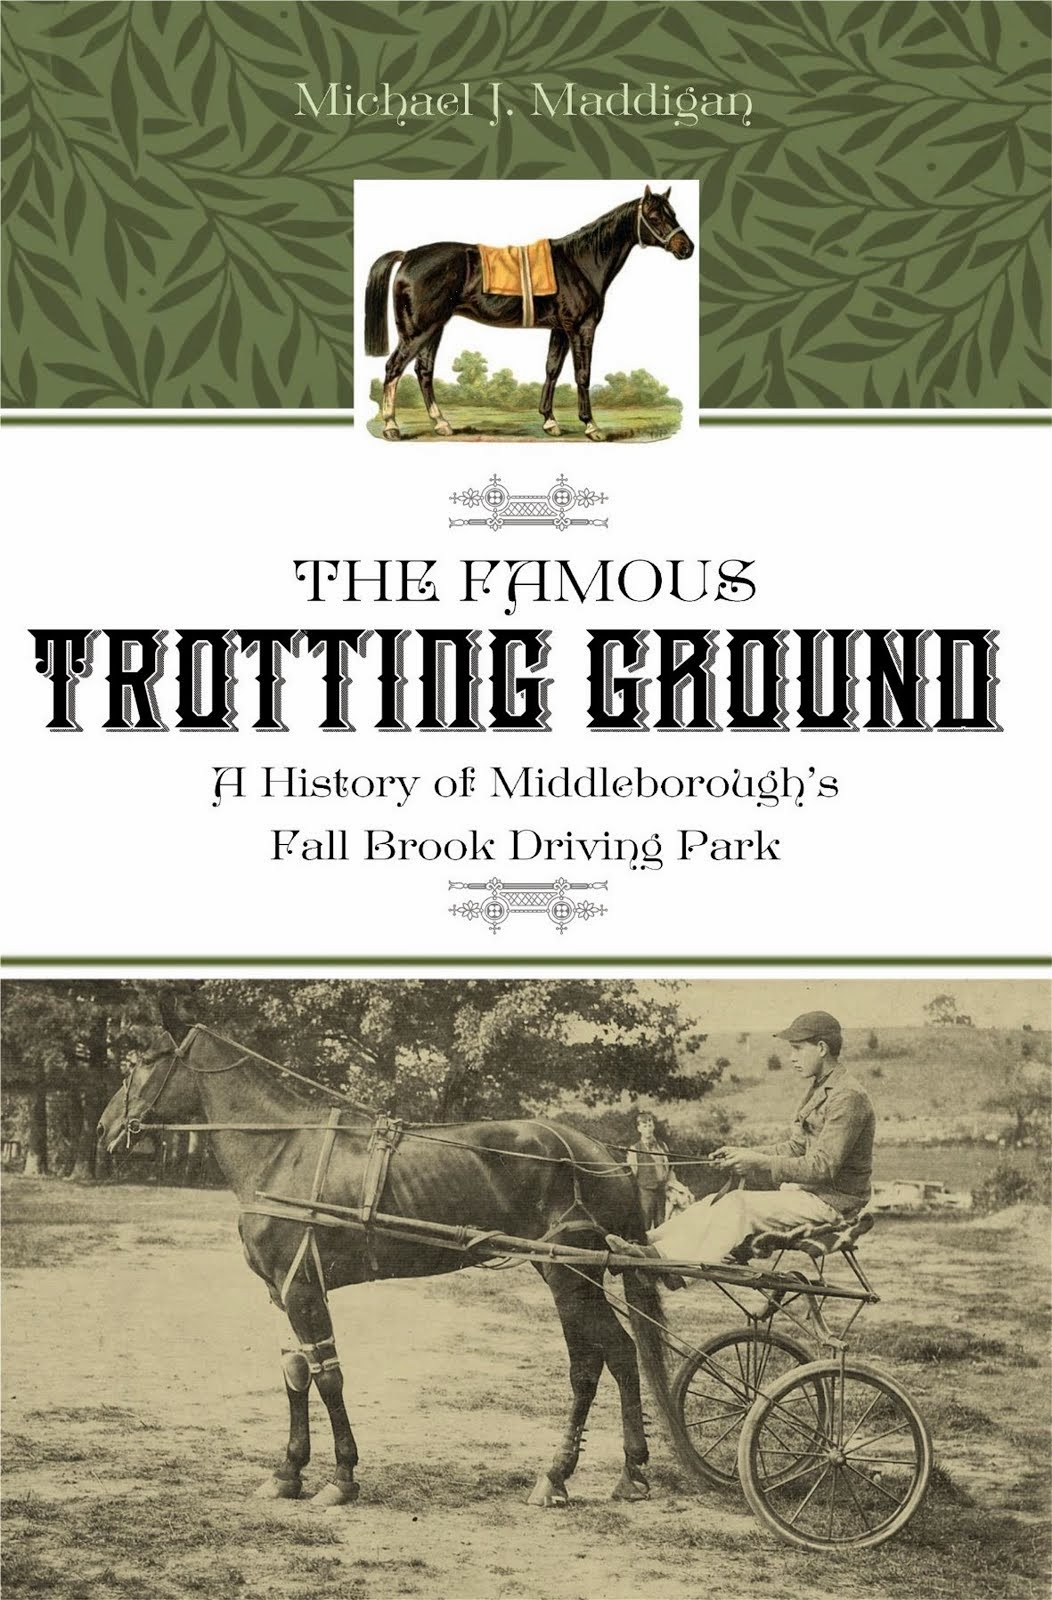 The Famous Trotting Ground: A History of Middleborough's Fall Brook Driving Park